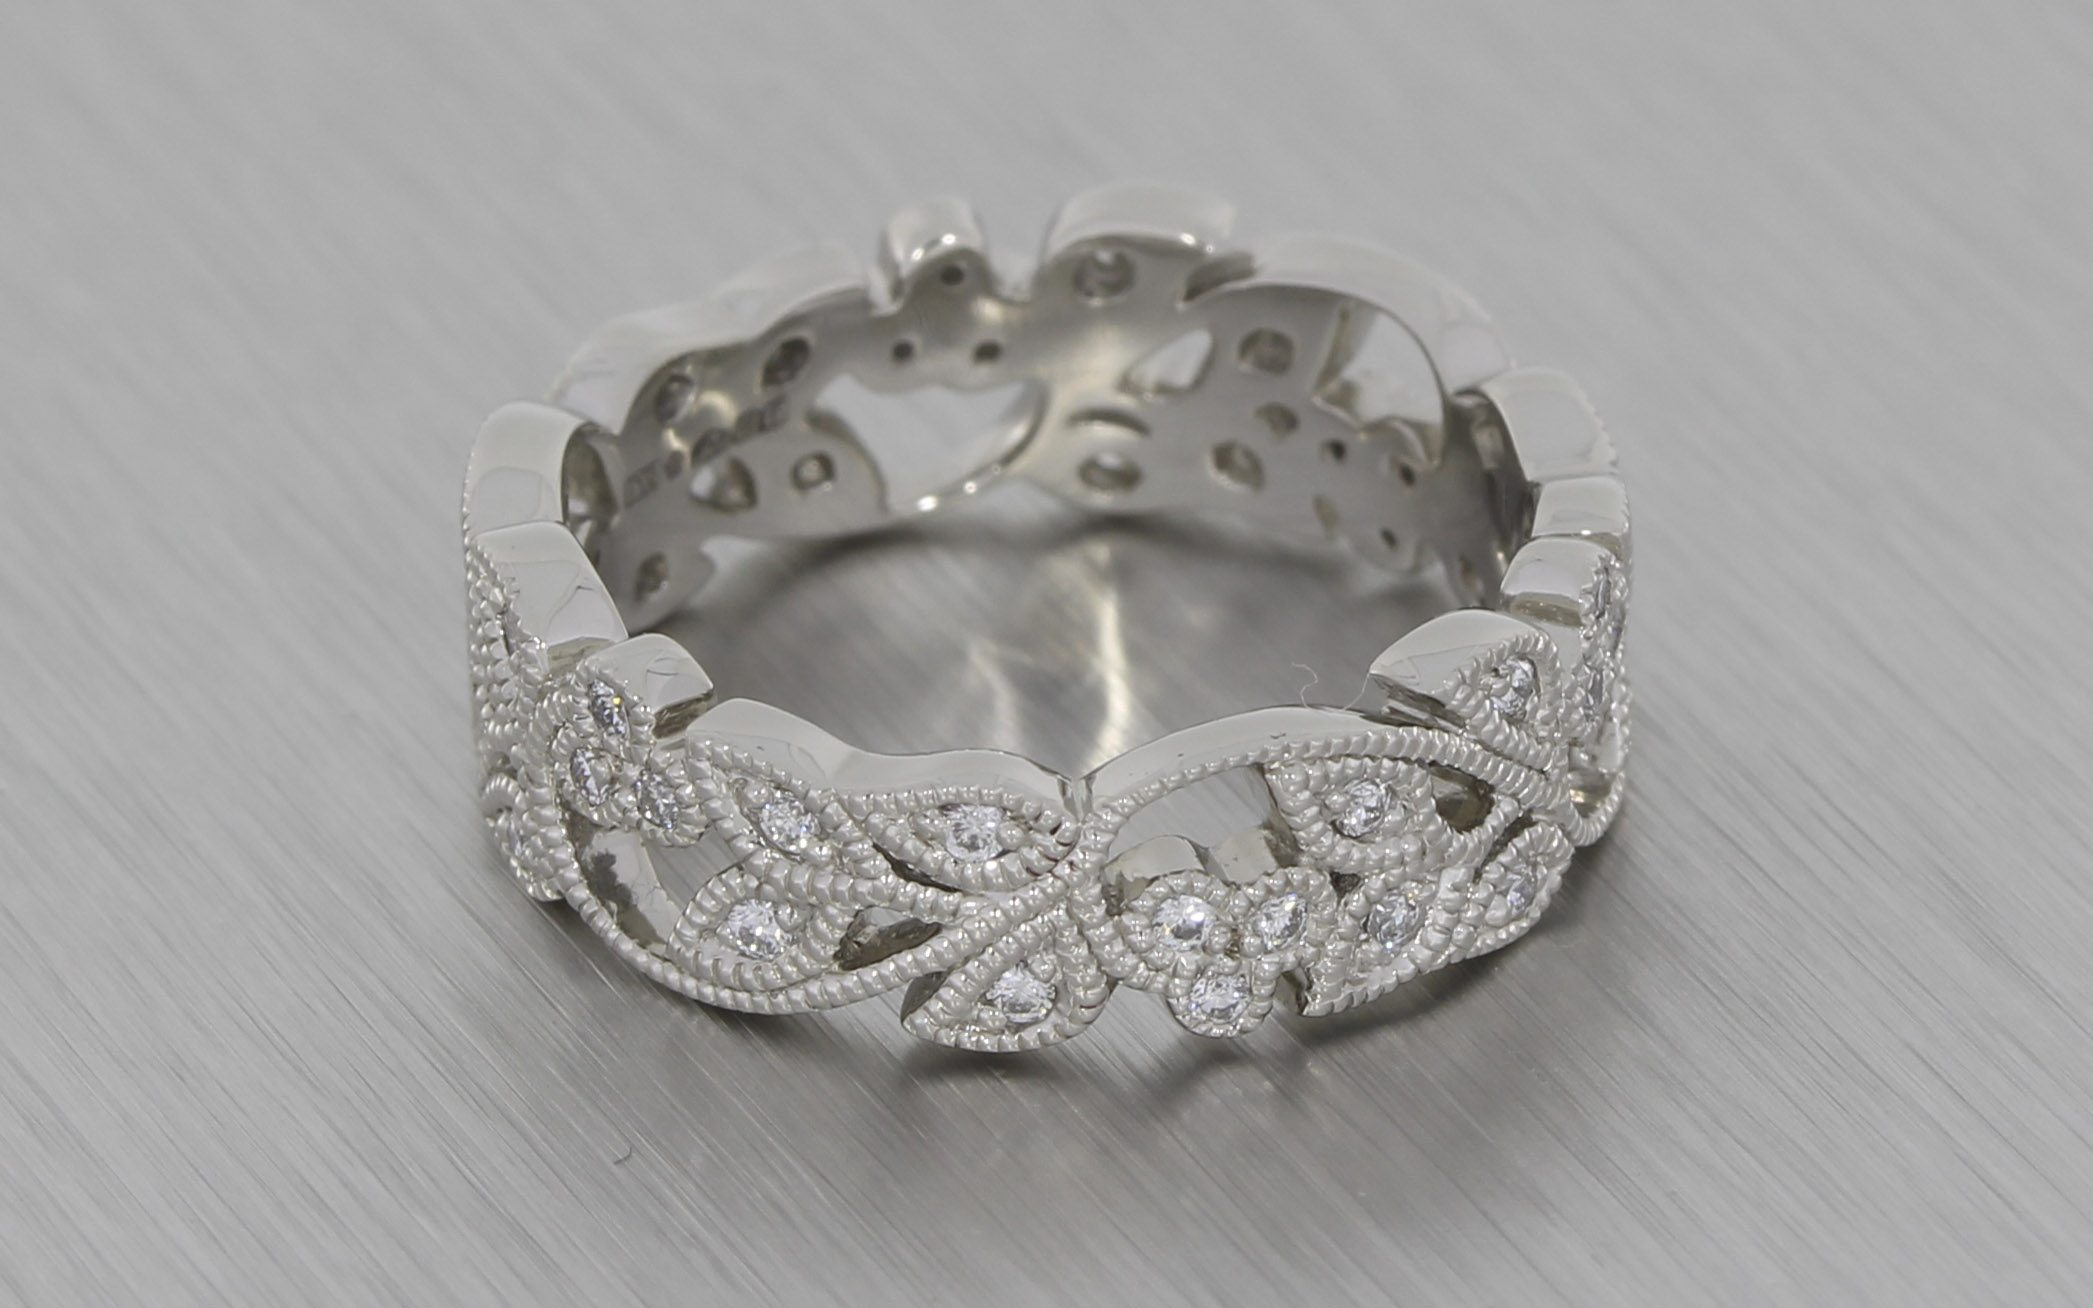 stunning vintage floral style platinum wedding band milgrain platinum wedding bands Stunning Vintage Floral Style Platinum Wedding Band with Milgrain Portfolio Durham Rose